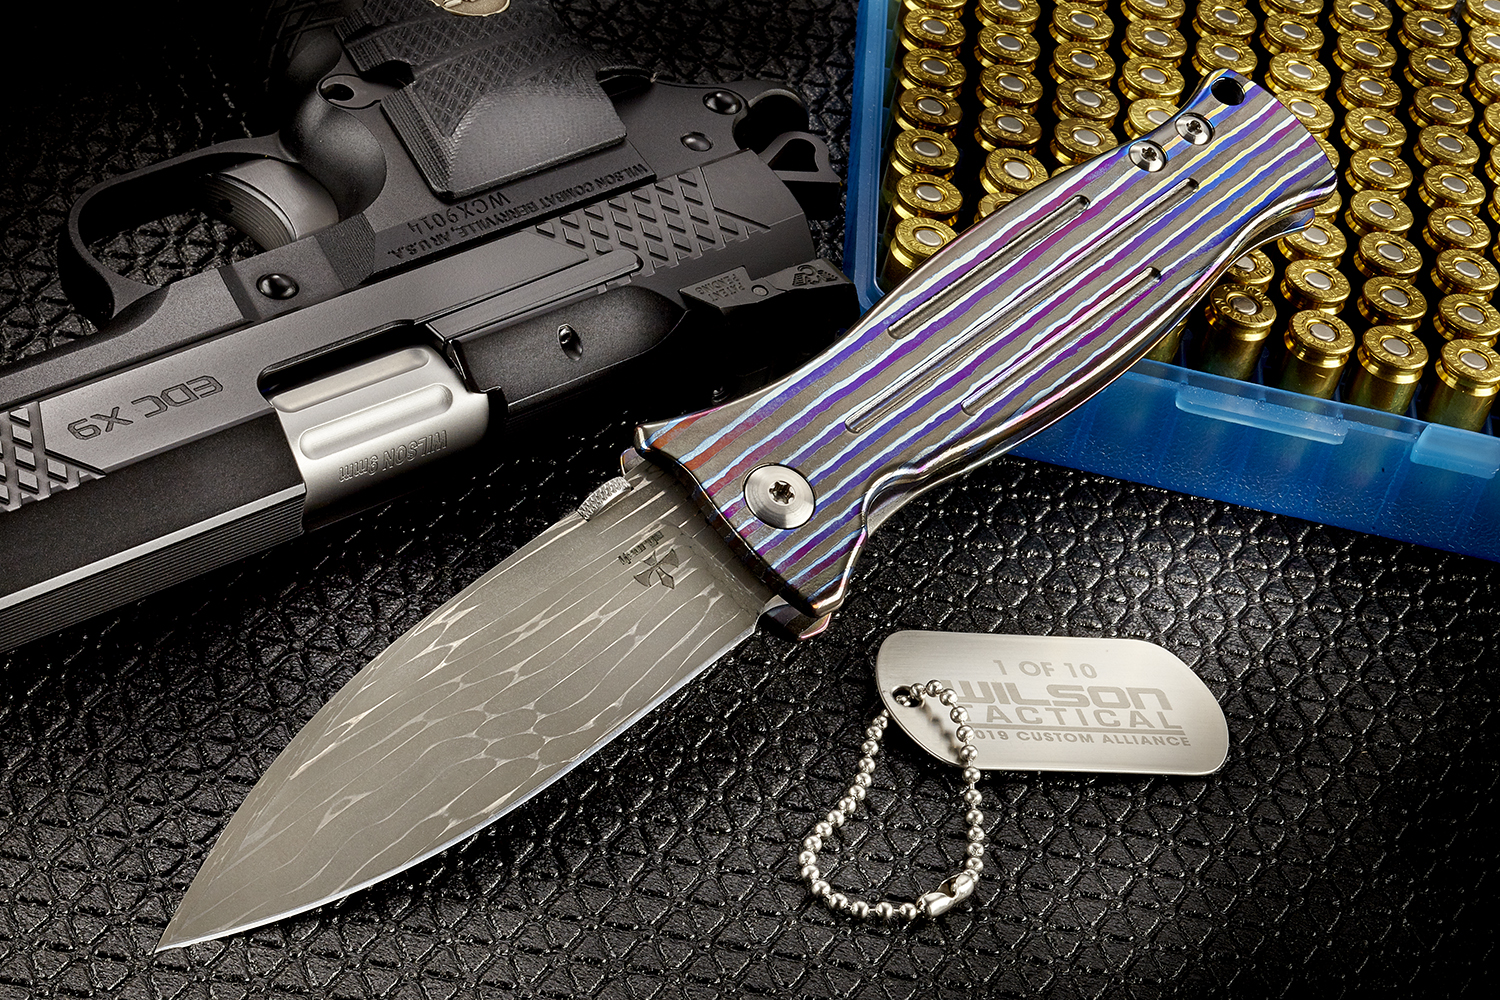 WILSON COMBAT ANNOUNCES NEW DAMASCUS/ZIRCUTI ASSASSIN FRAMELOCK FOLDER KNIFE